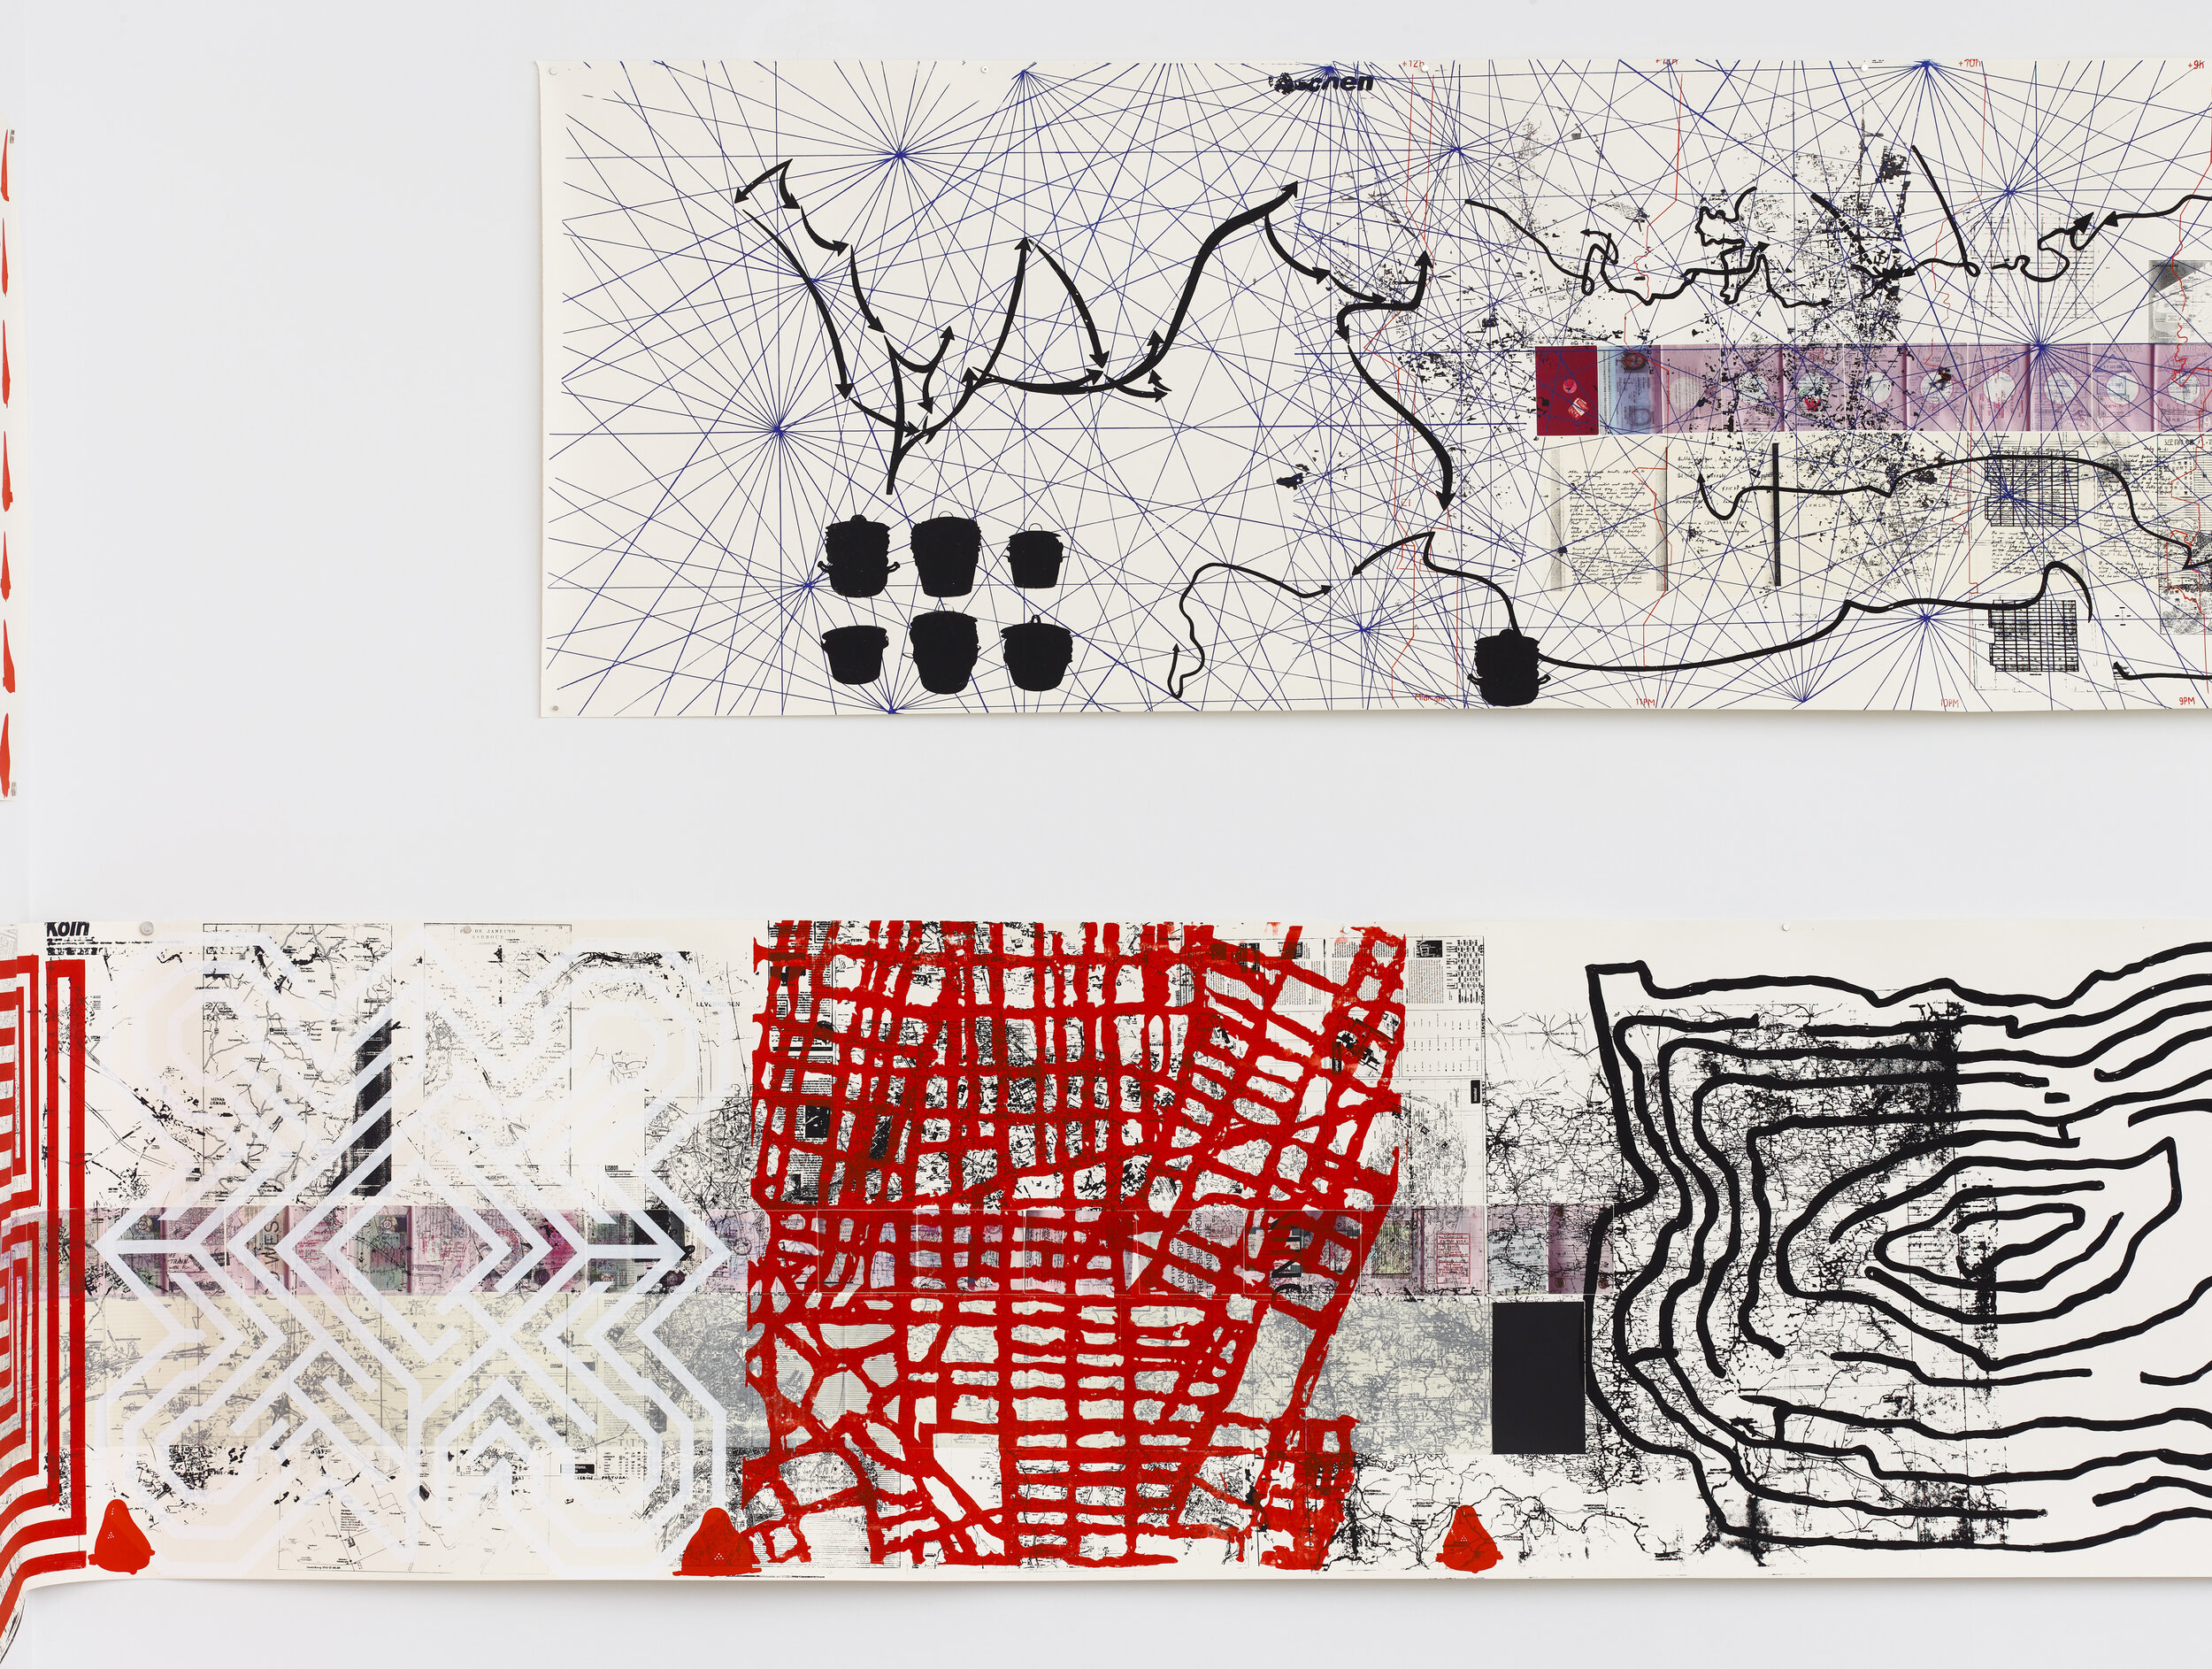 Rirkrit Tiravanija, Untitled 2008–2011 (the map of the land of feeling) I–III, 2008 - 11, Three scrolls with digital printing, lithography, chine collé, and screenprint, Approx. size each 36 x 334 inches Edition 5 of 40, 10